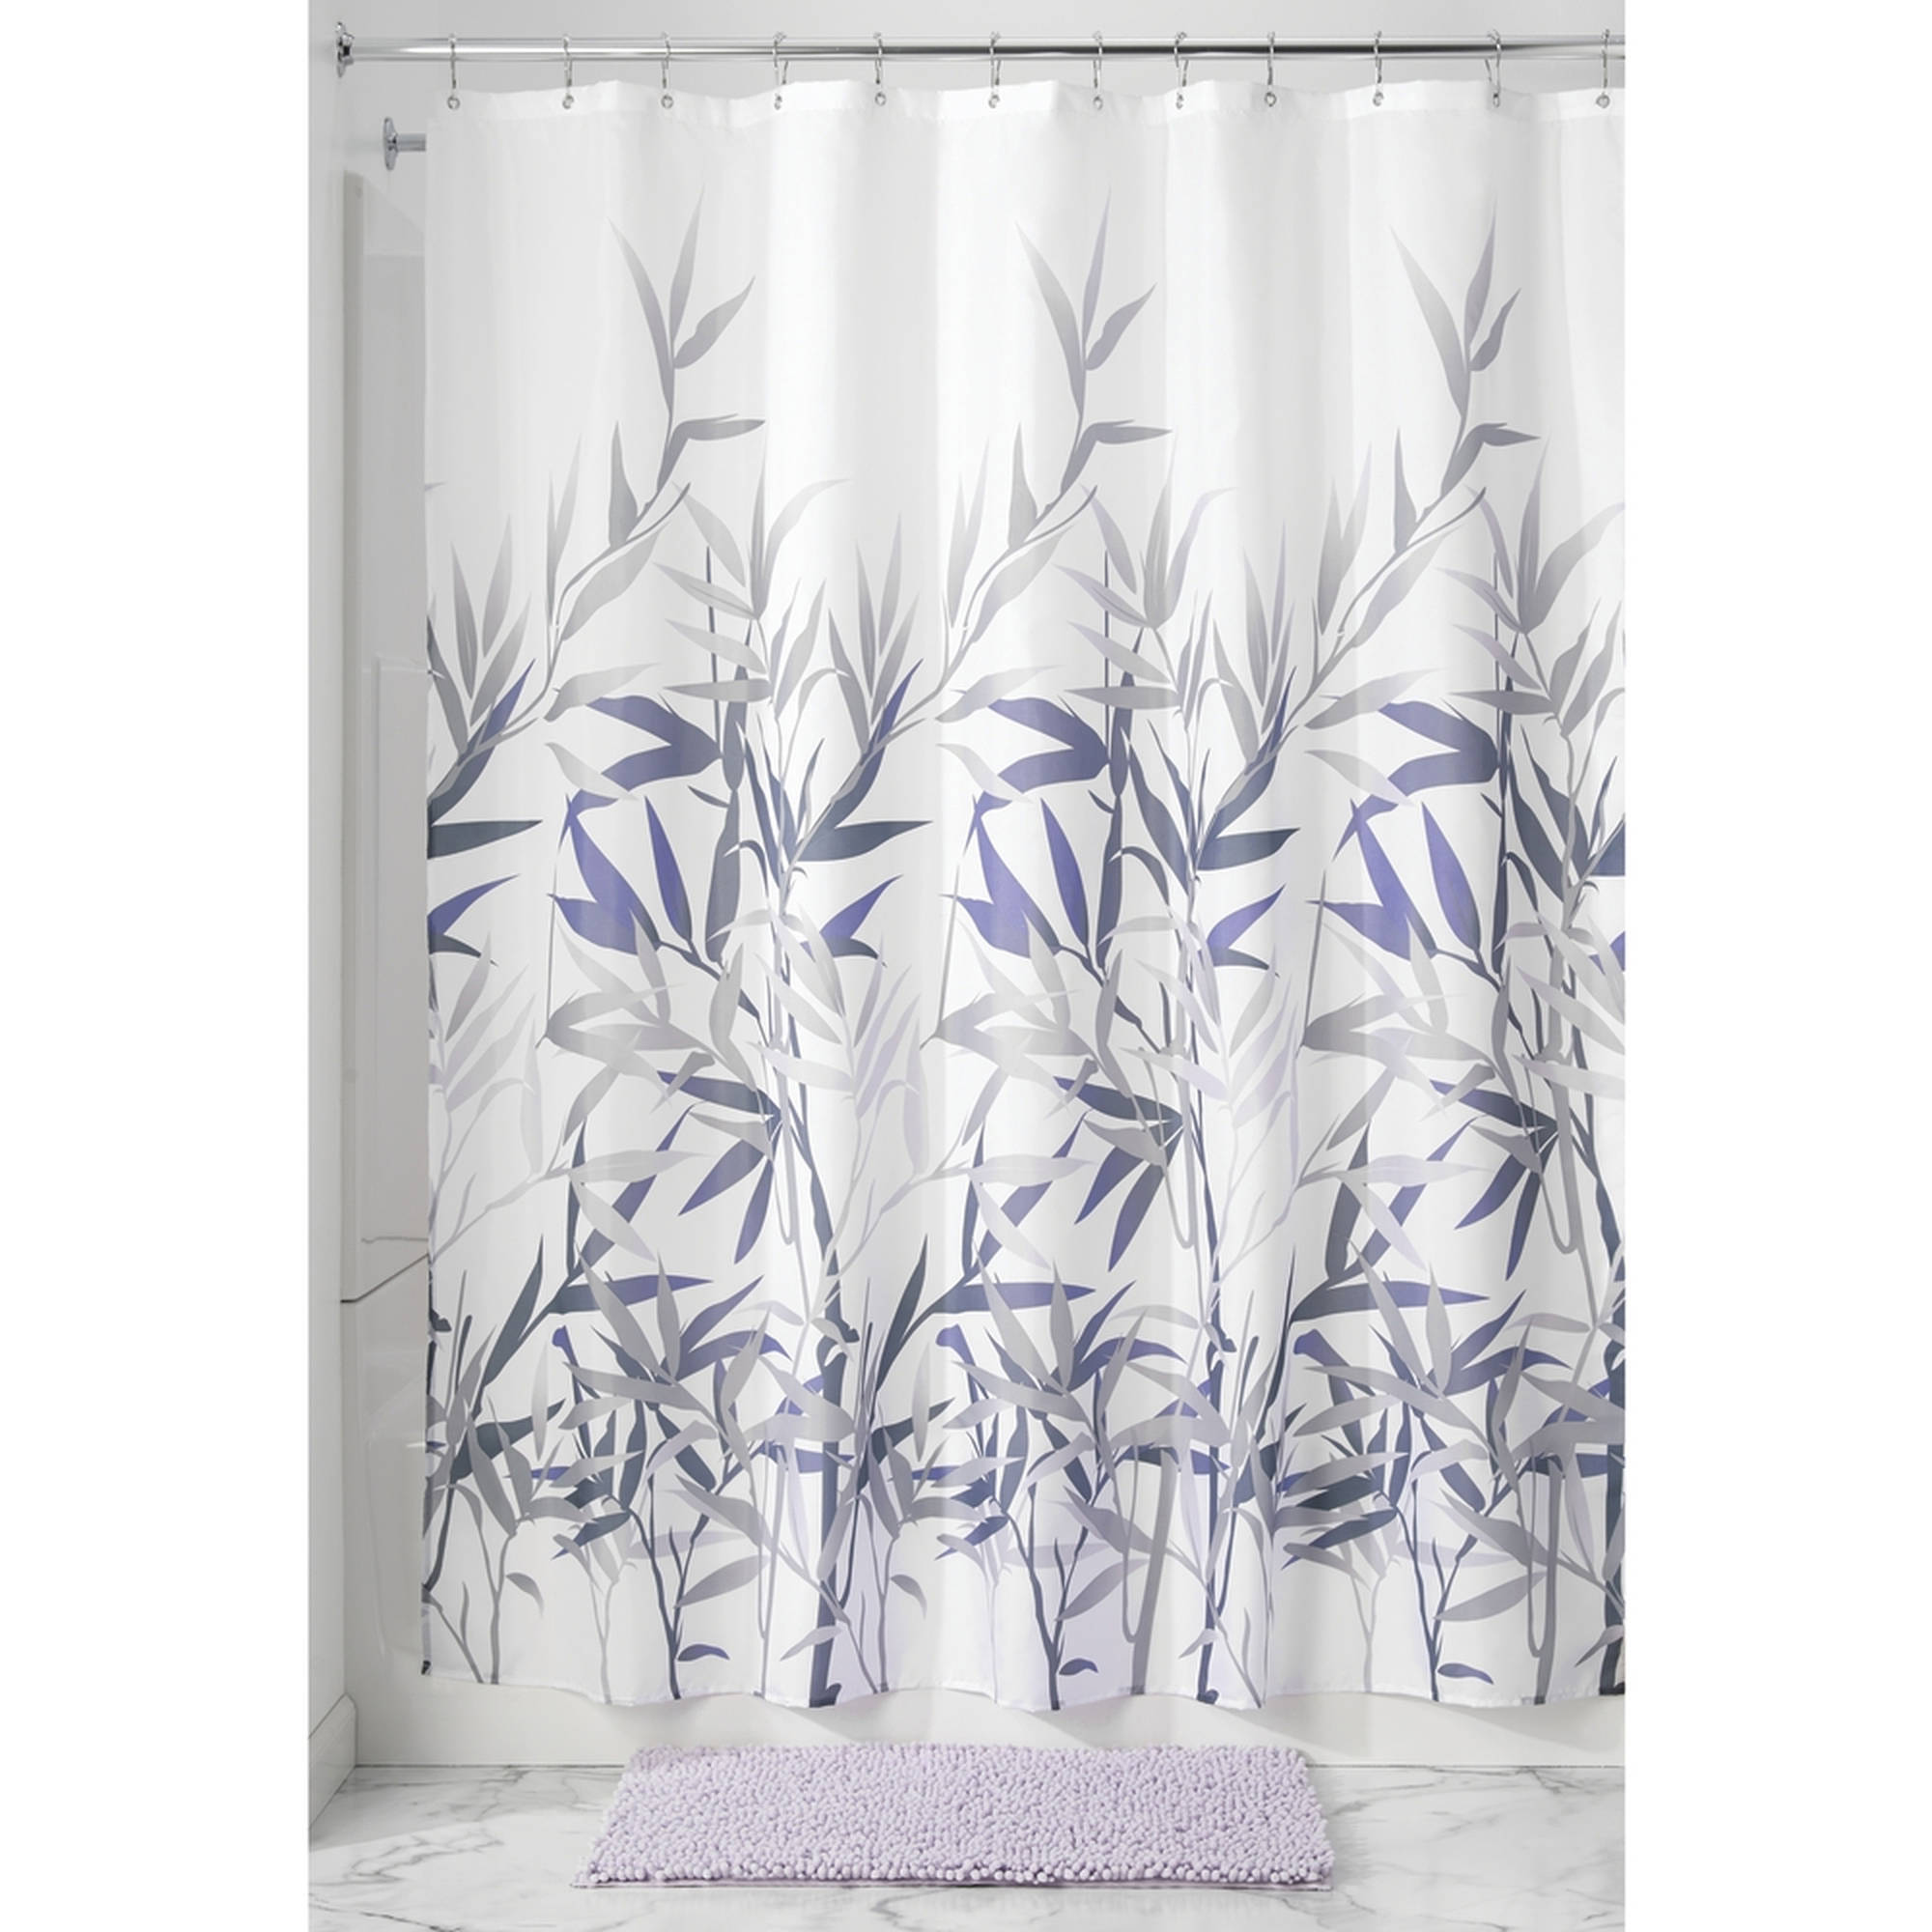 InterDesign Anzu Fabric Shower Curtain, Various Sizes & Colors